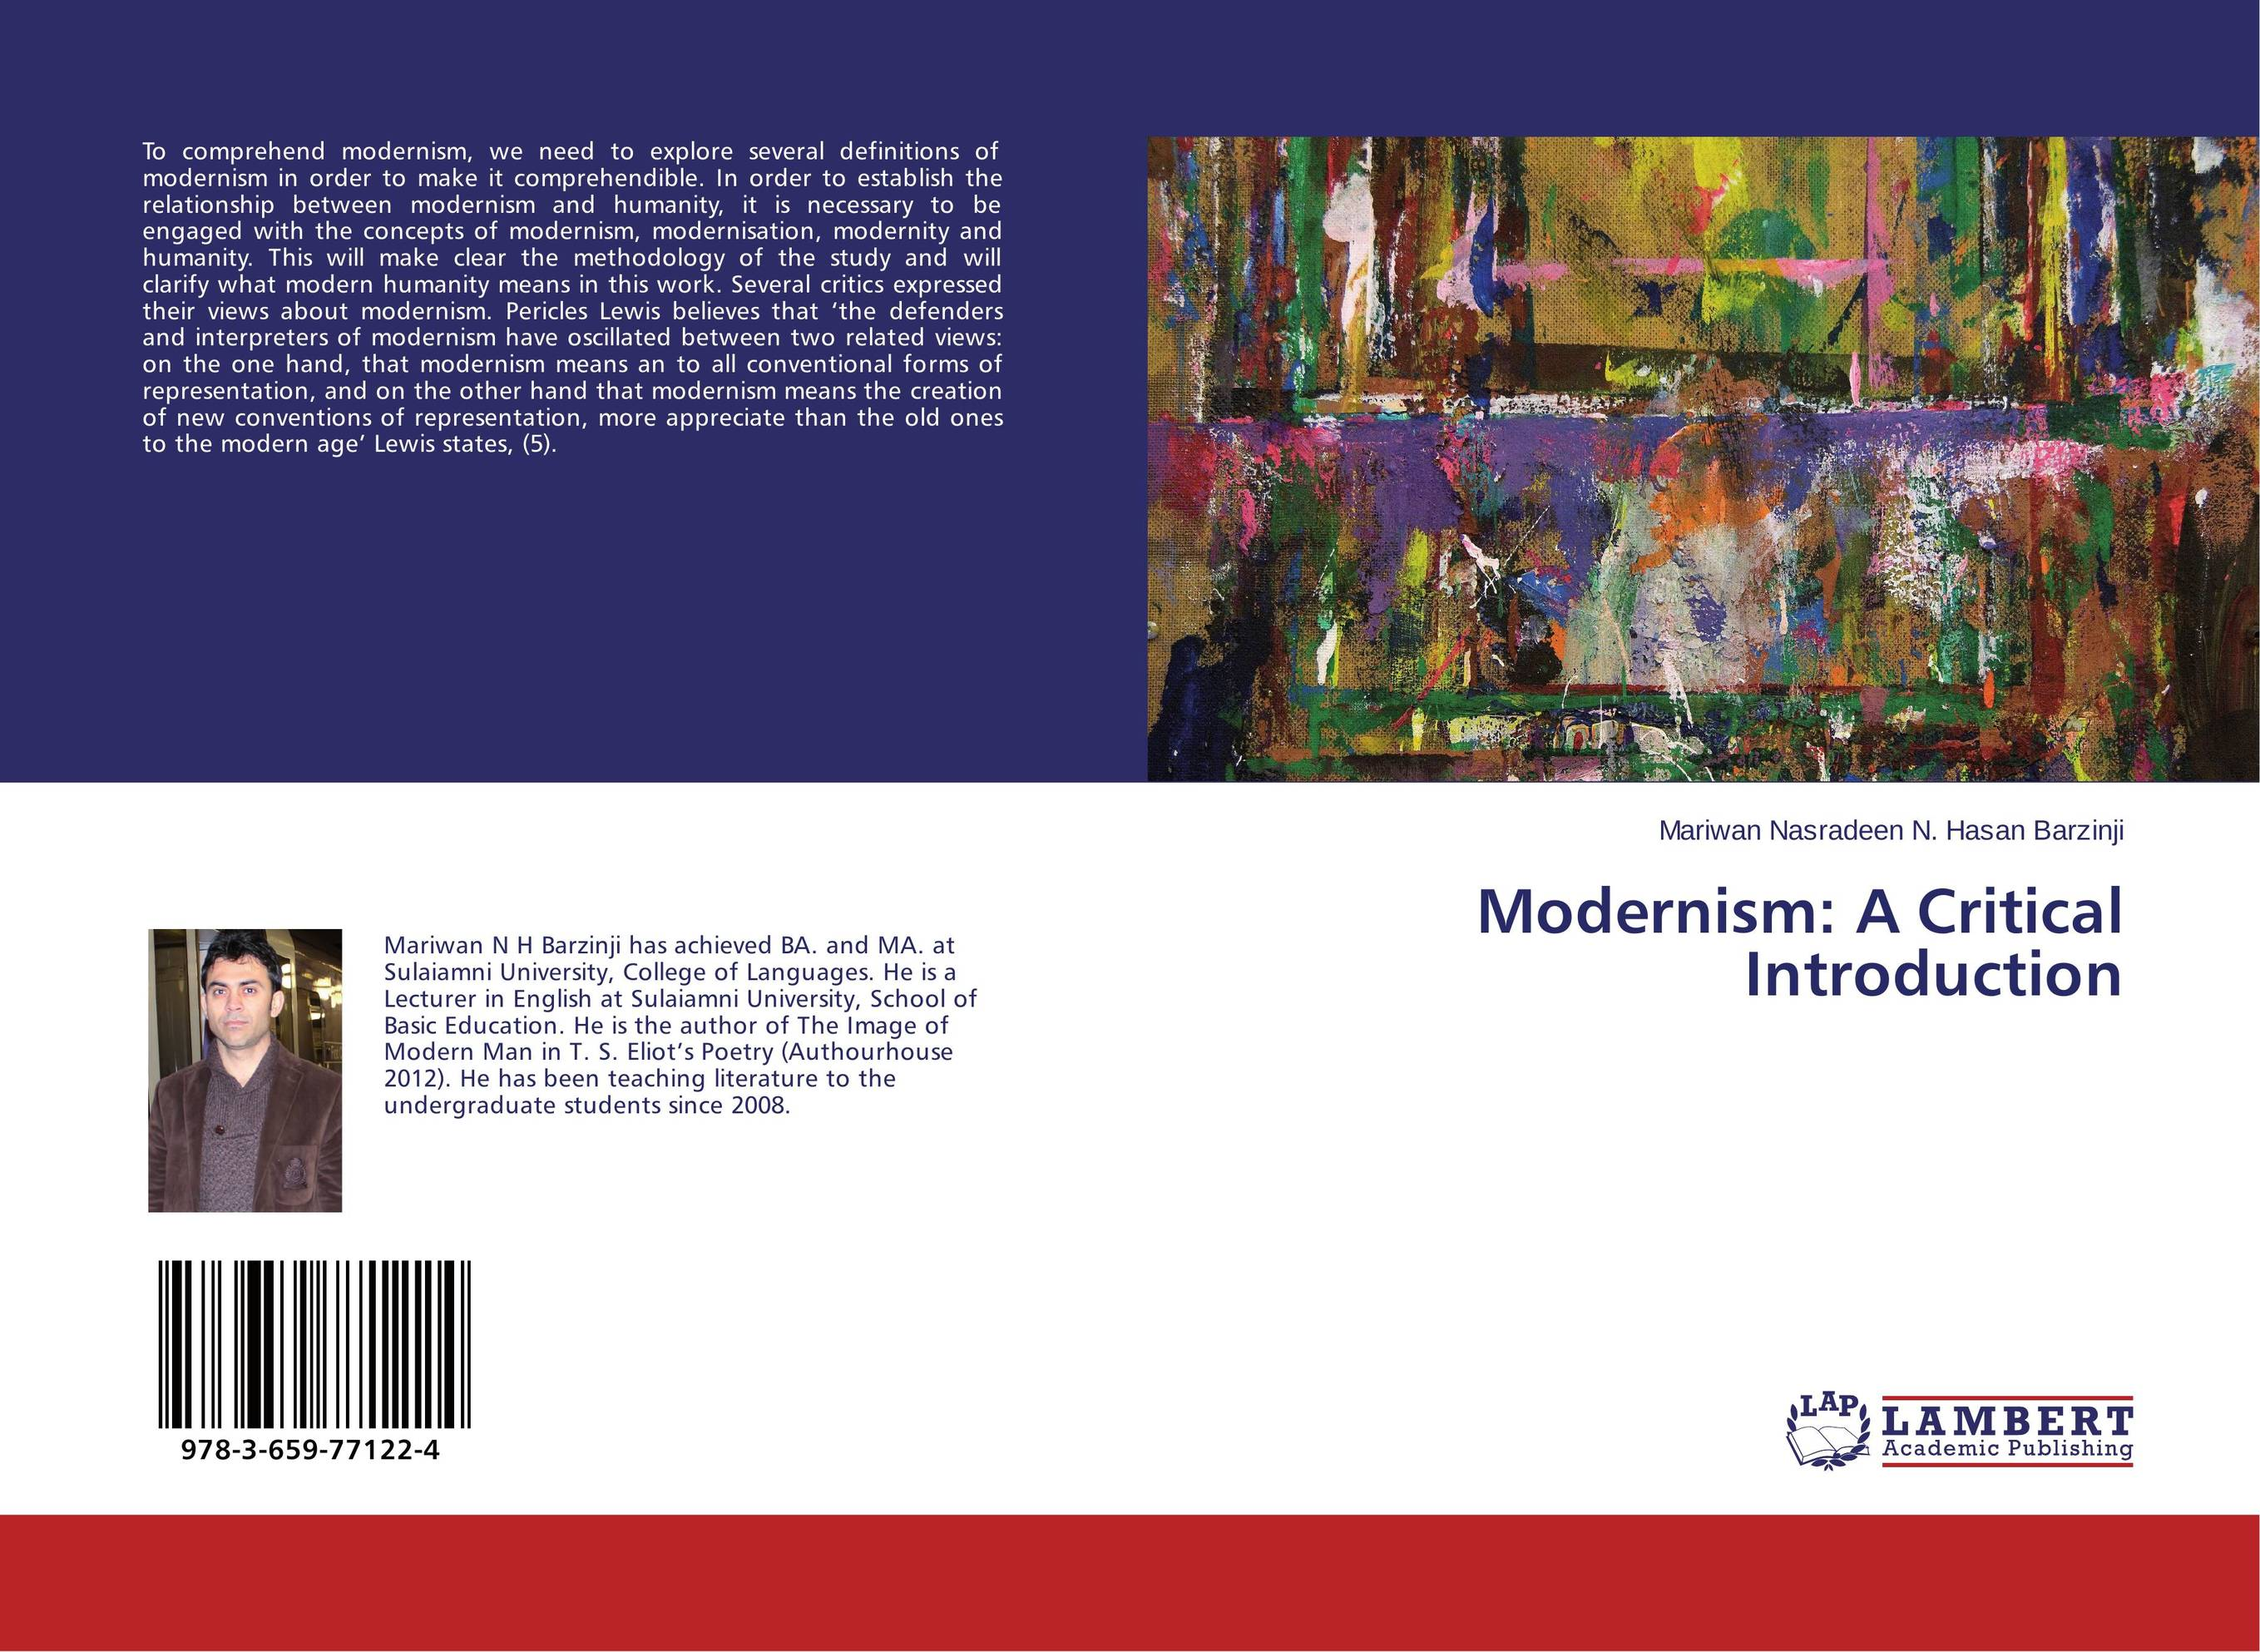 Modernism: A Critical Introduction british poetry in the age of modernism